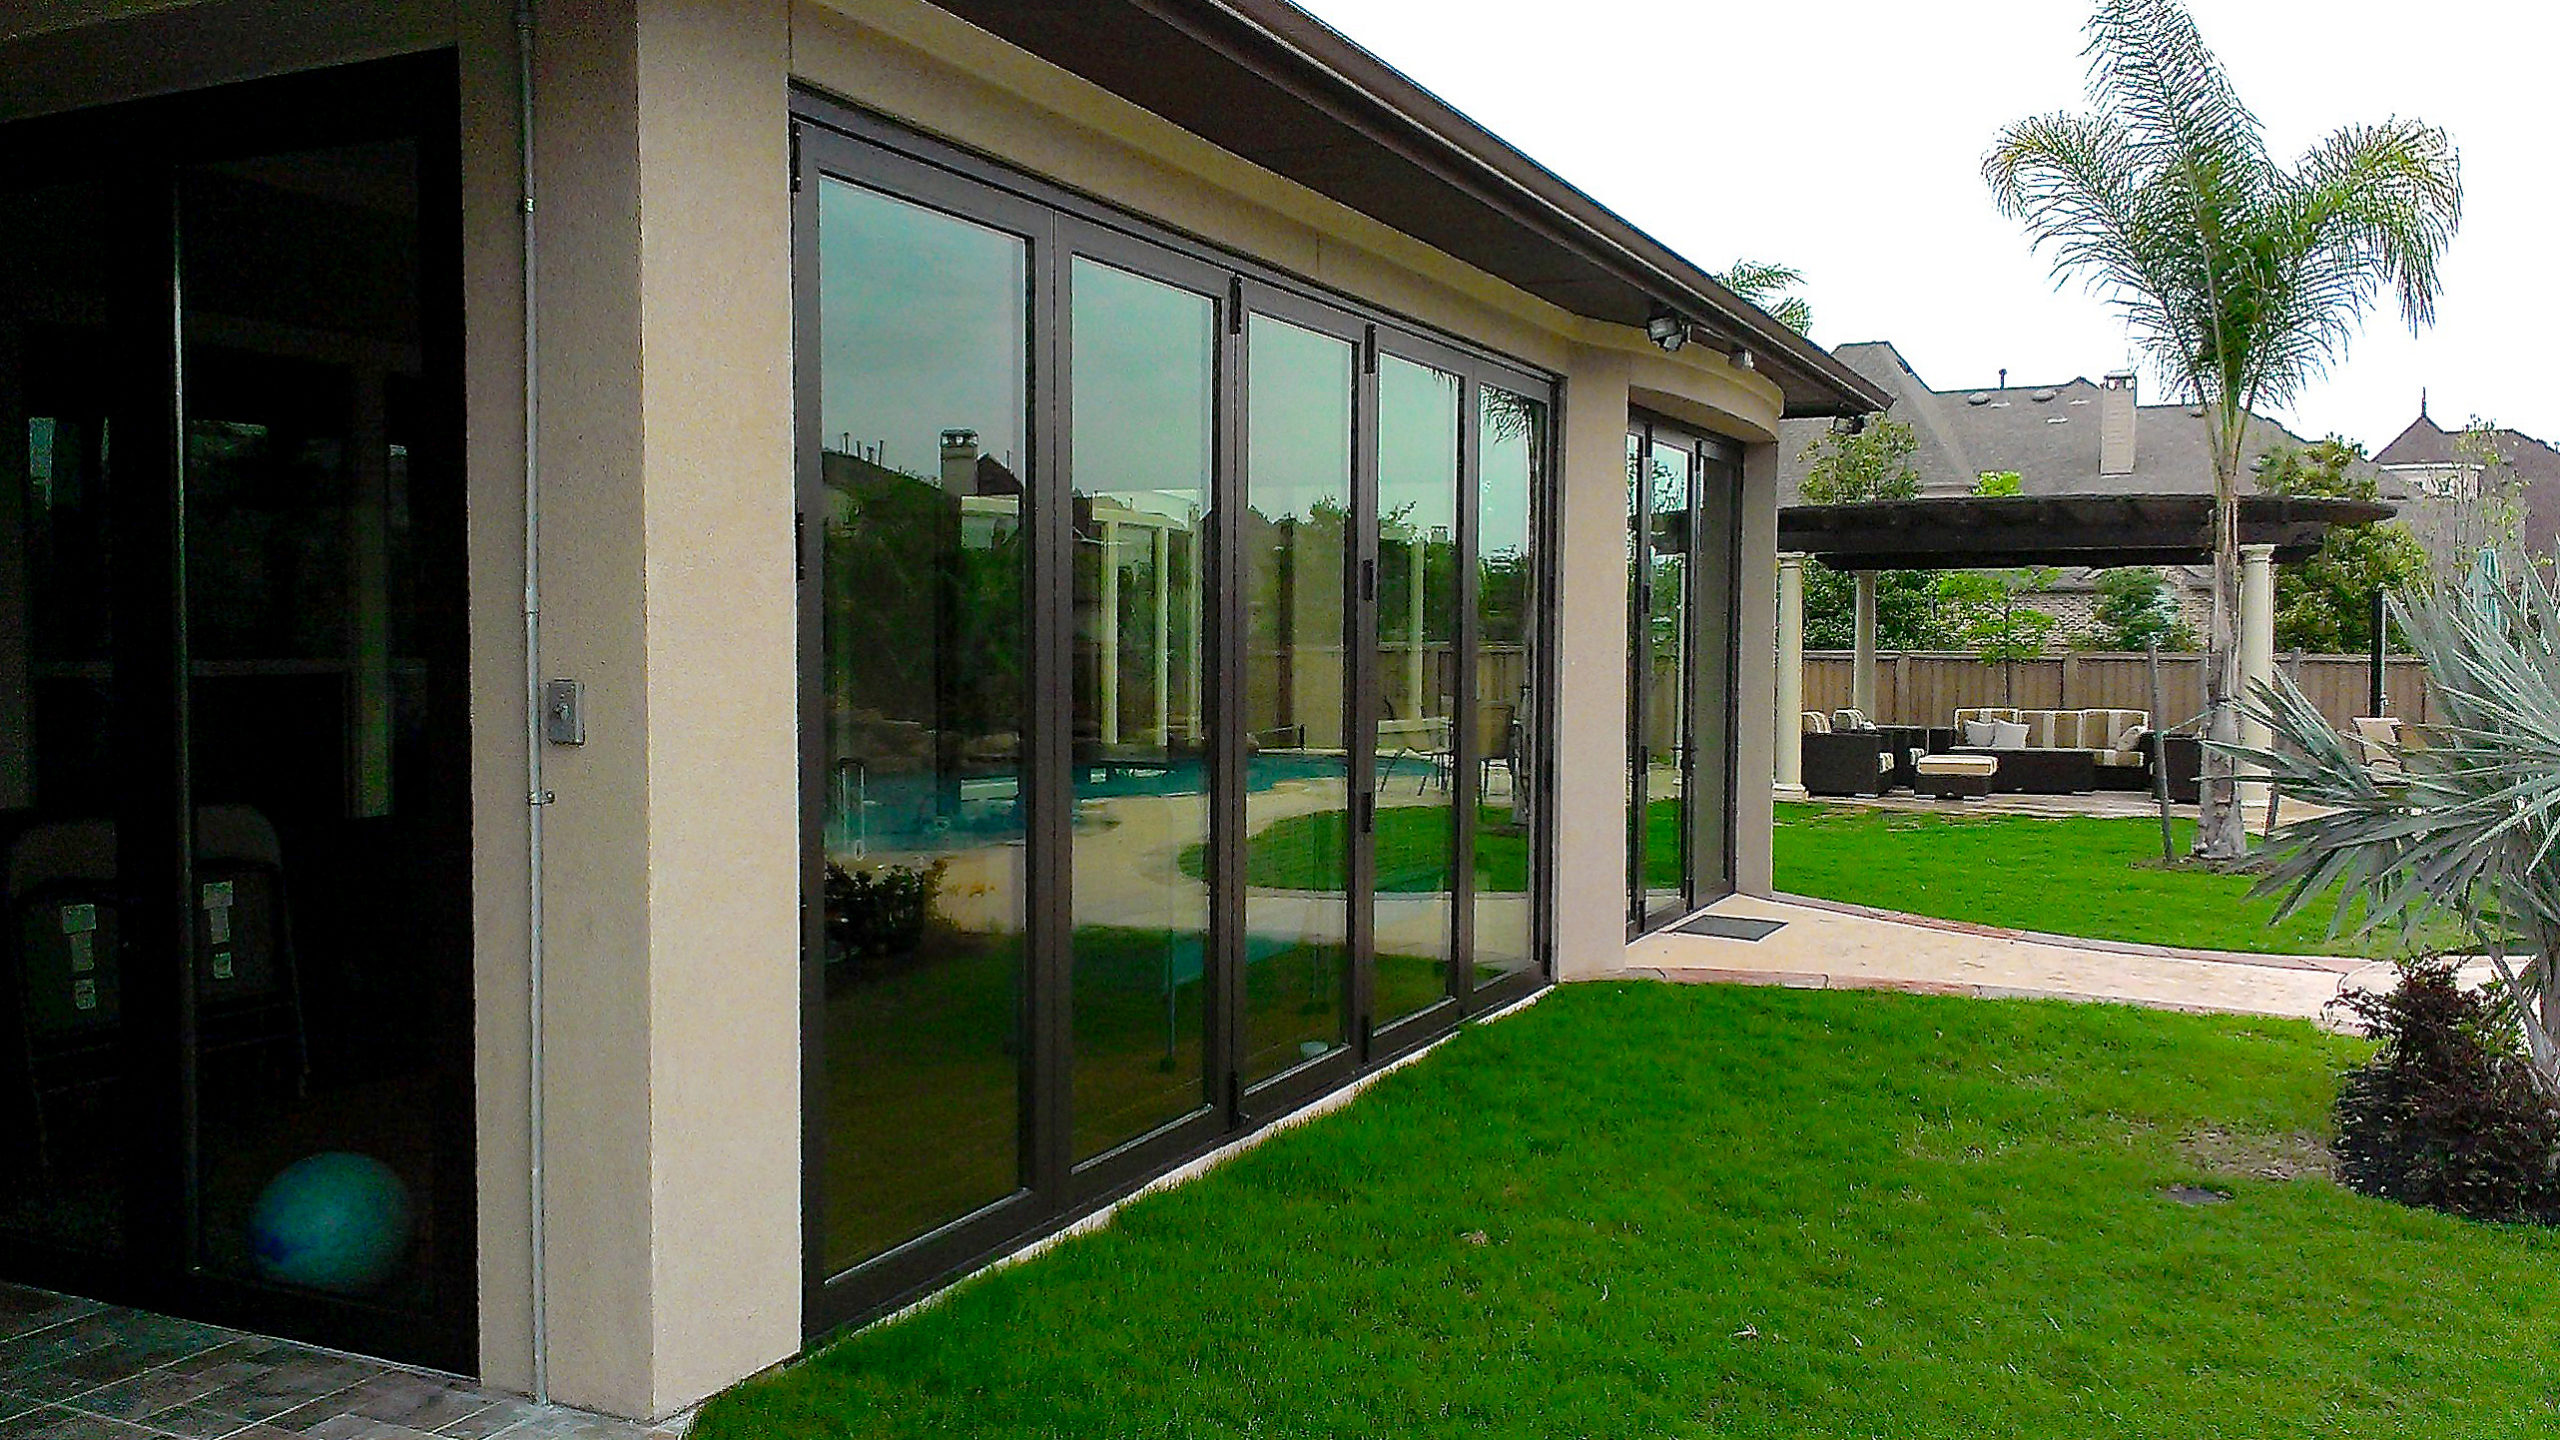 Four sets of bifold doors